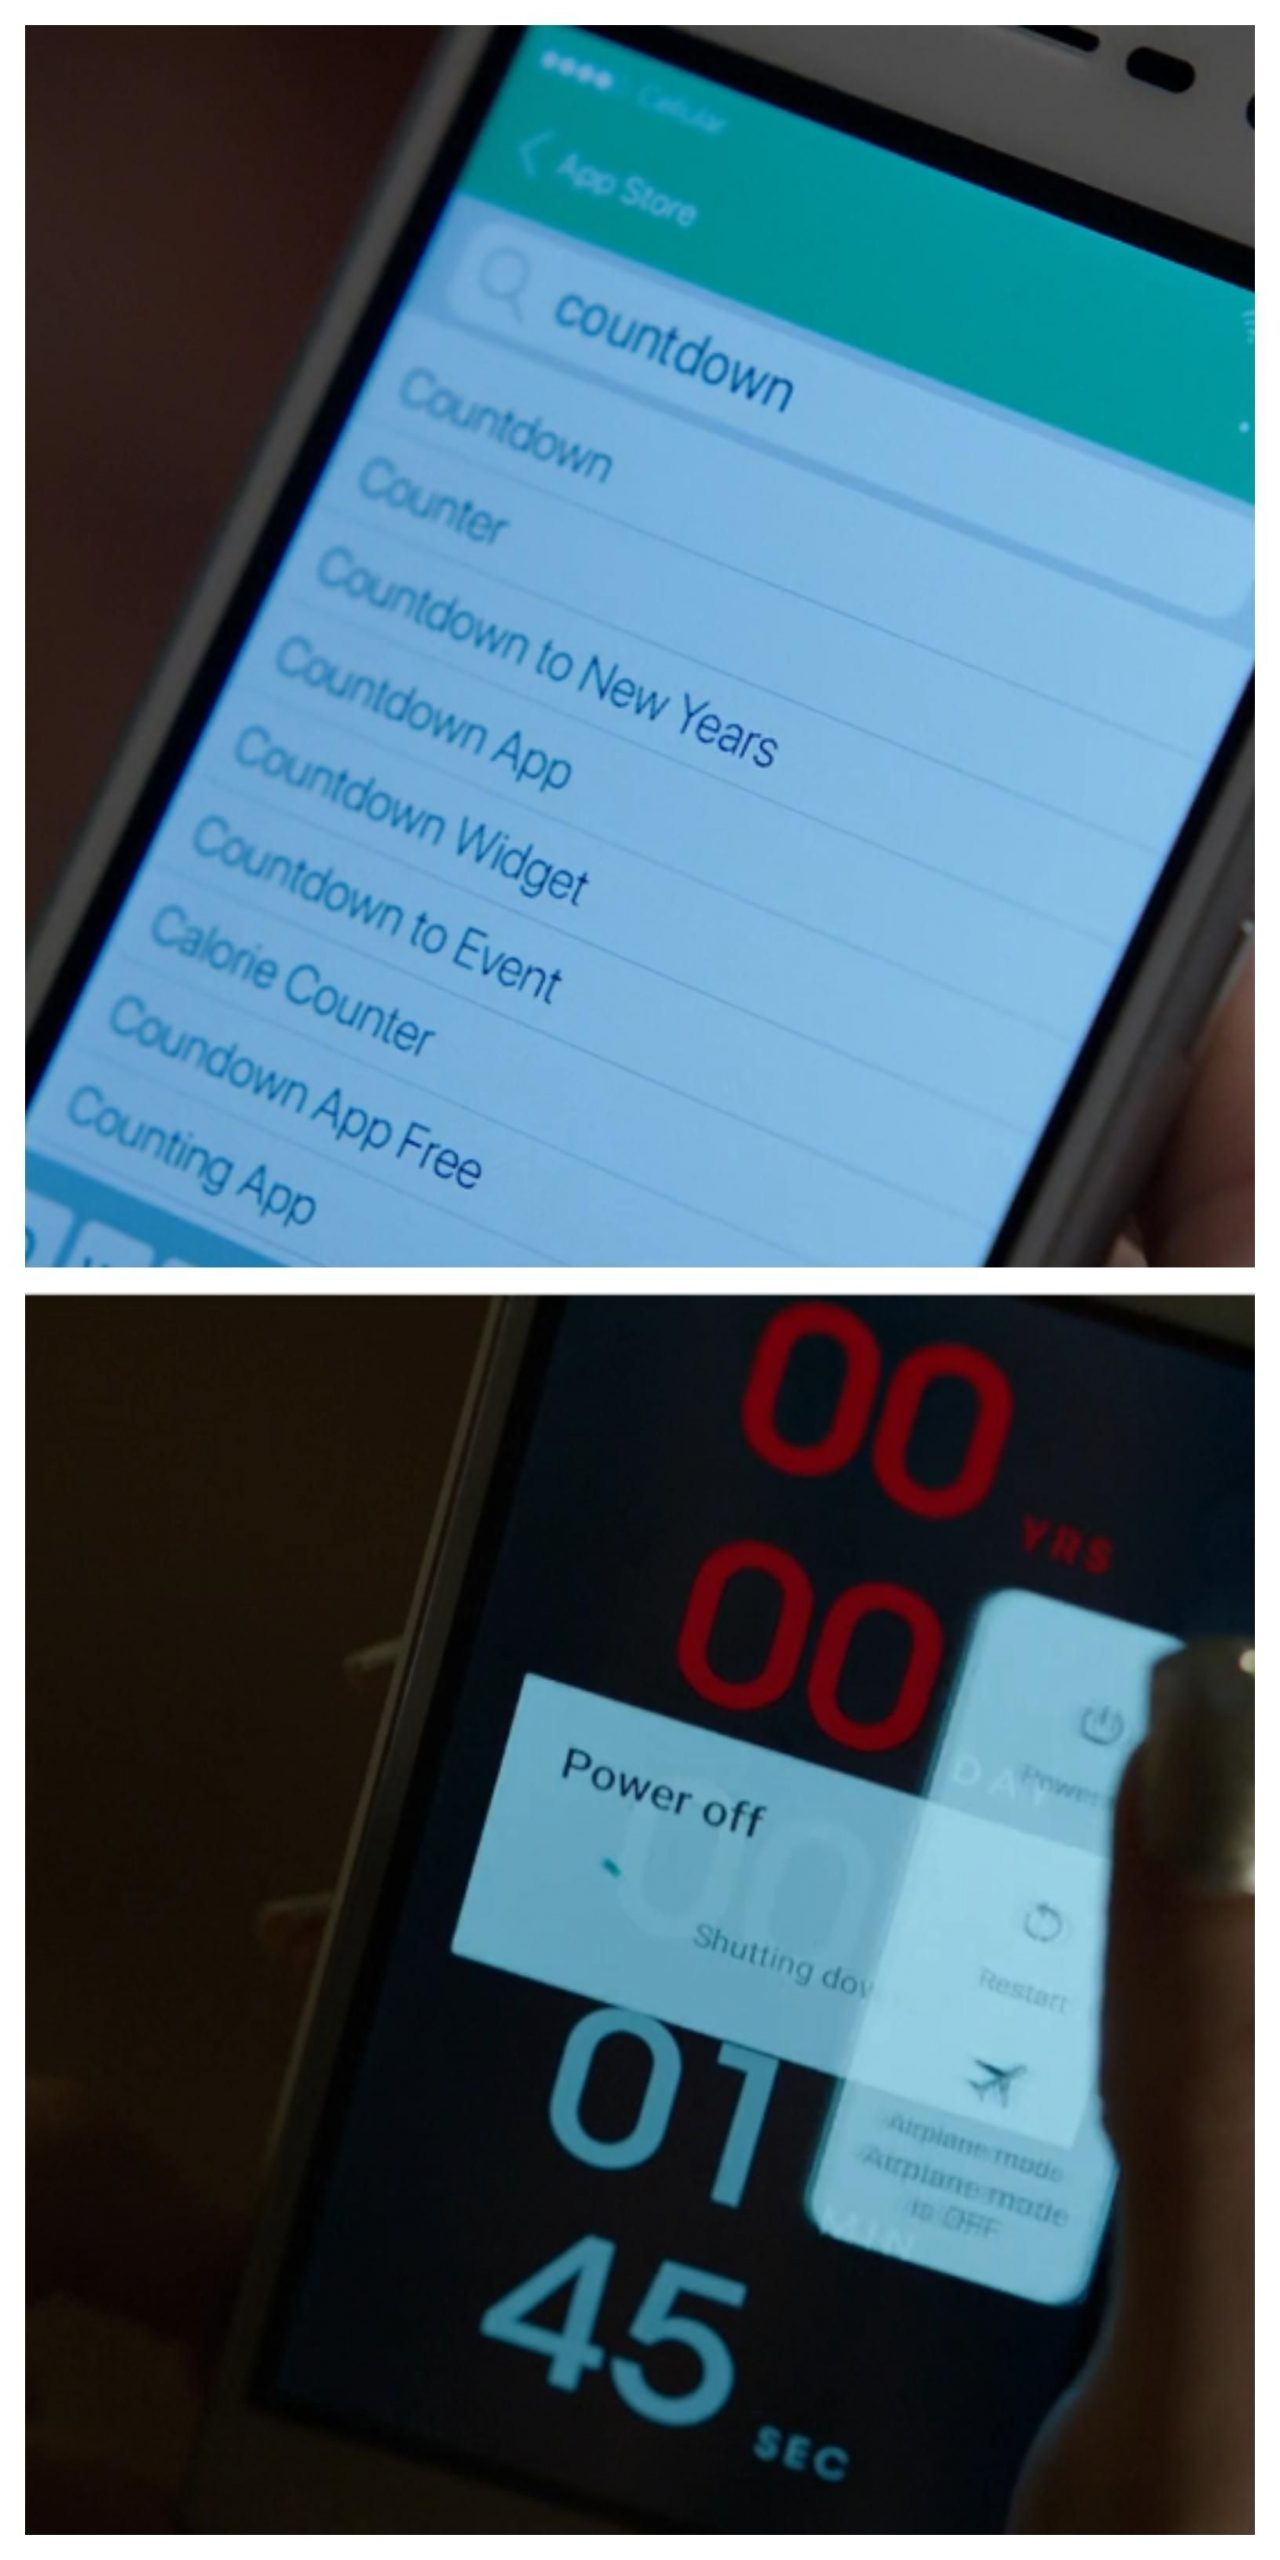 in countdown(2019) iphone is used while downloading but